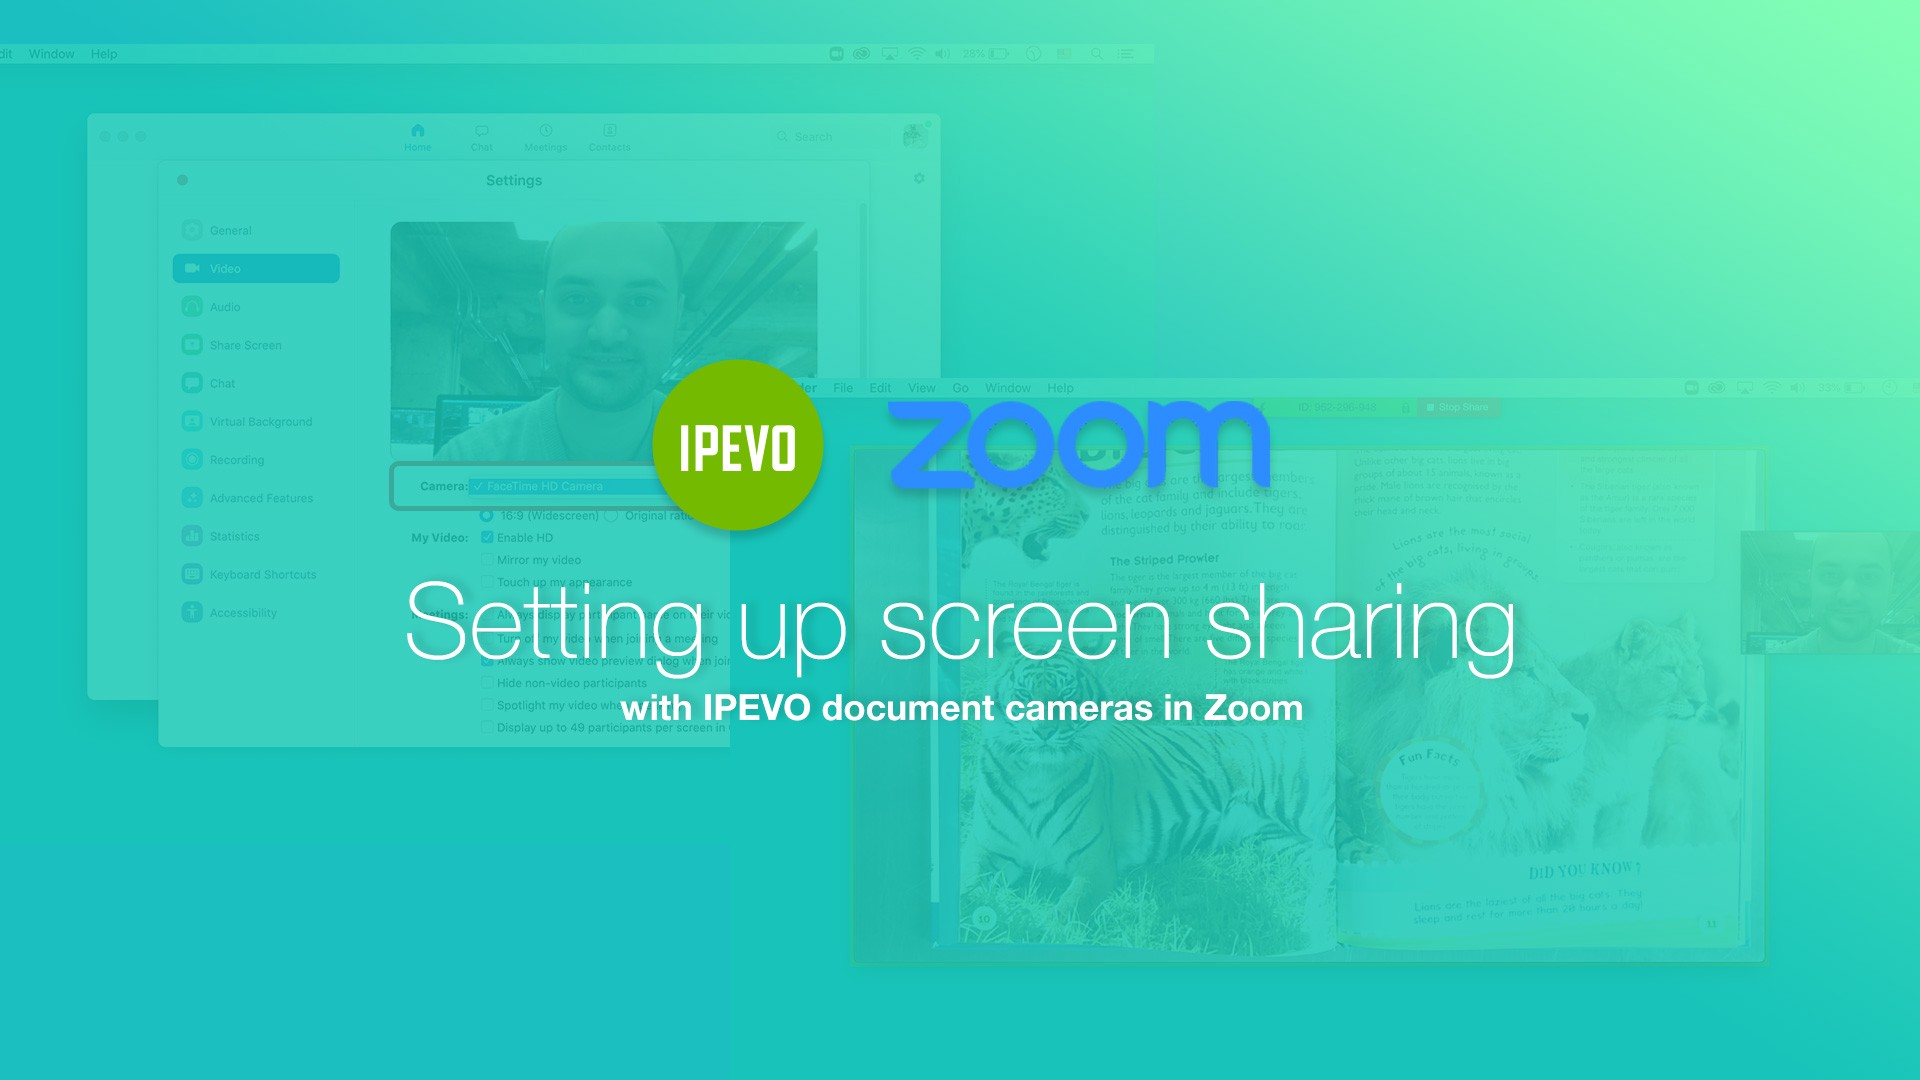 Setting up screen sharing with IPEVO document cameras in Zoom